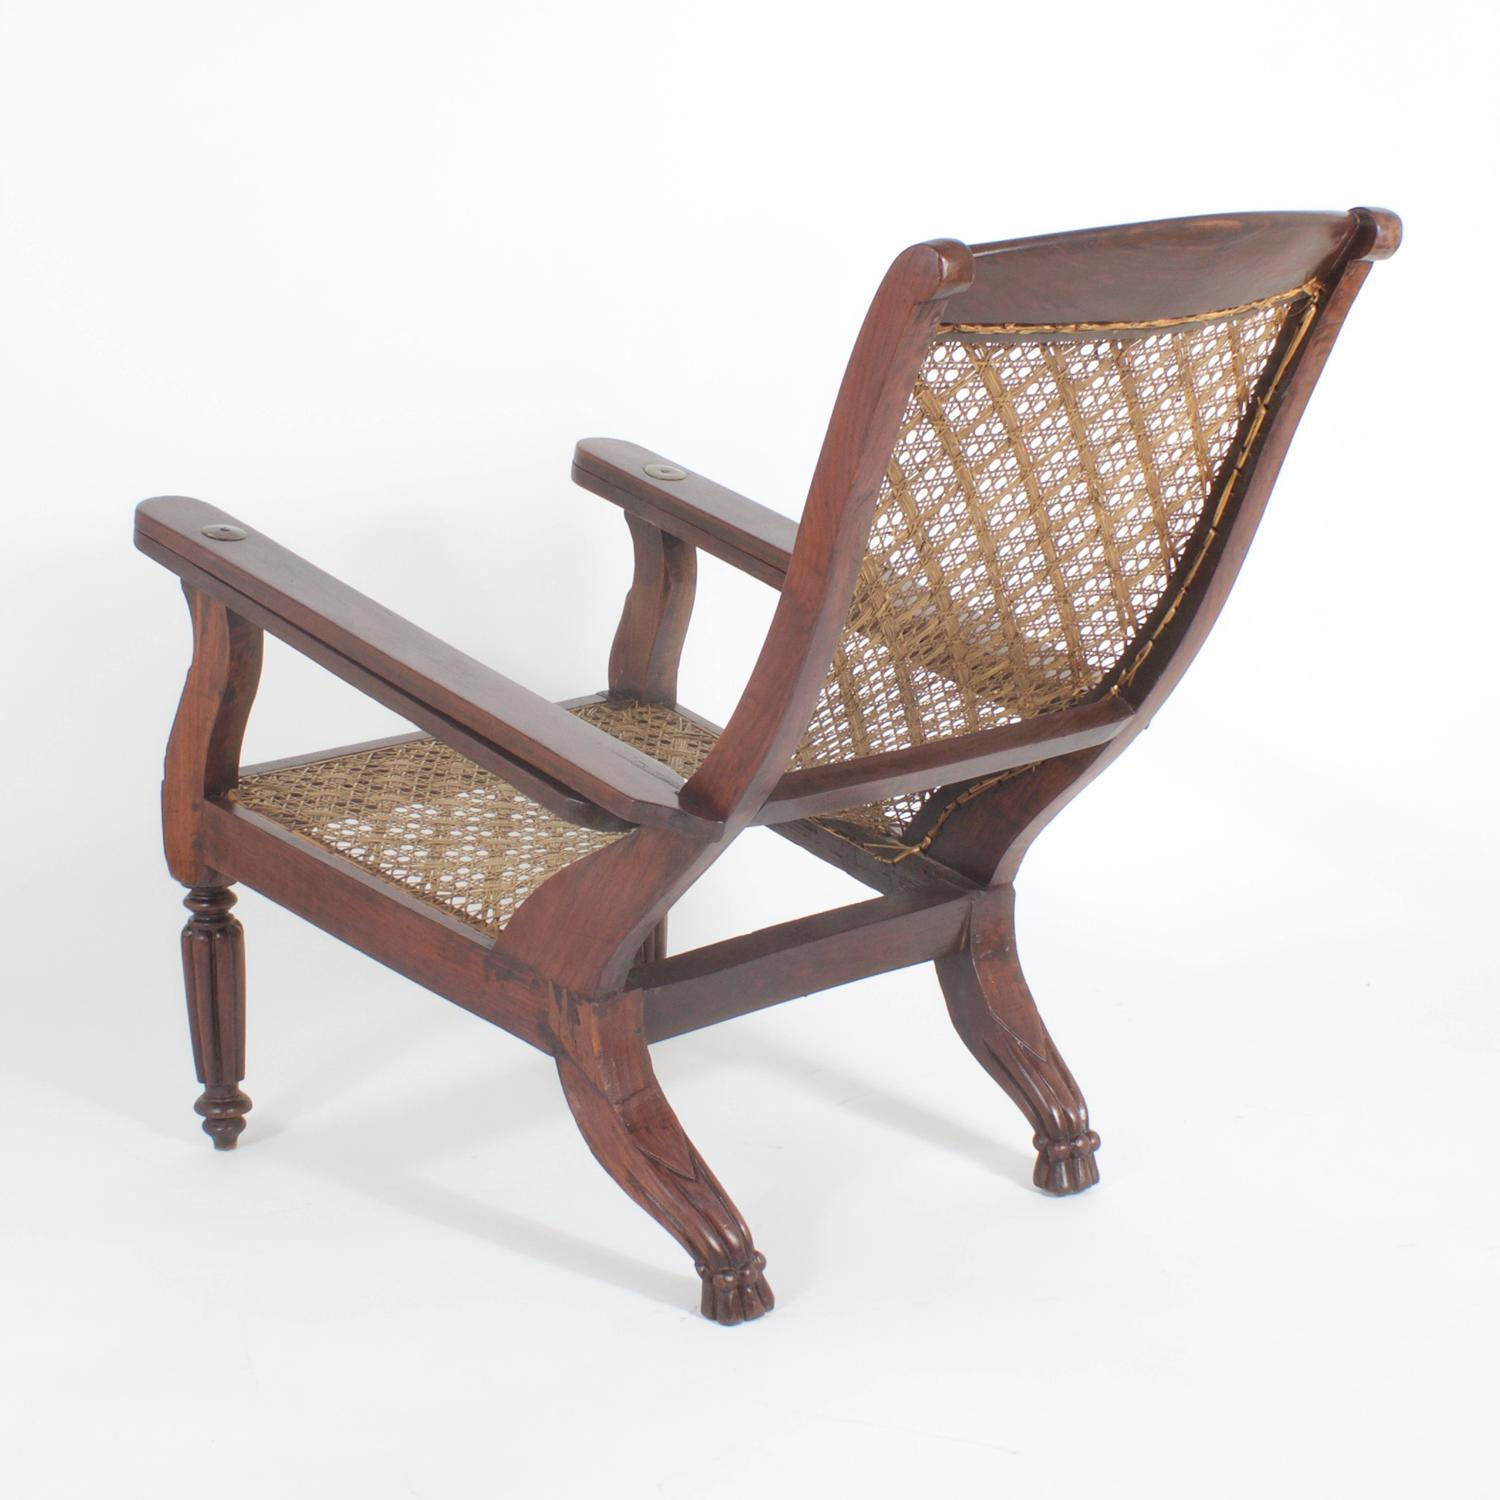 Planters Chairs: 19th Century Planters Or Plantation Chair For Sale At 1stdibs